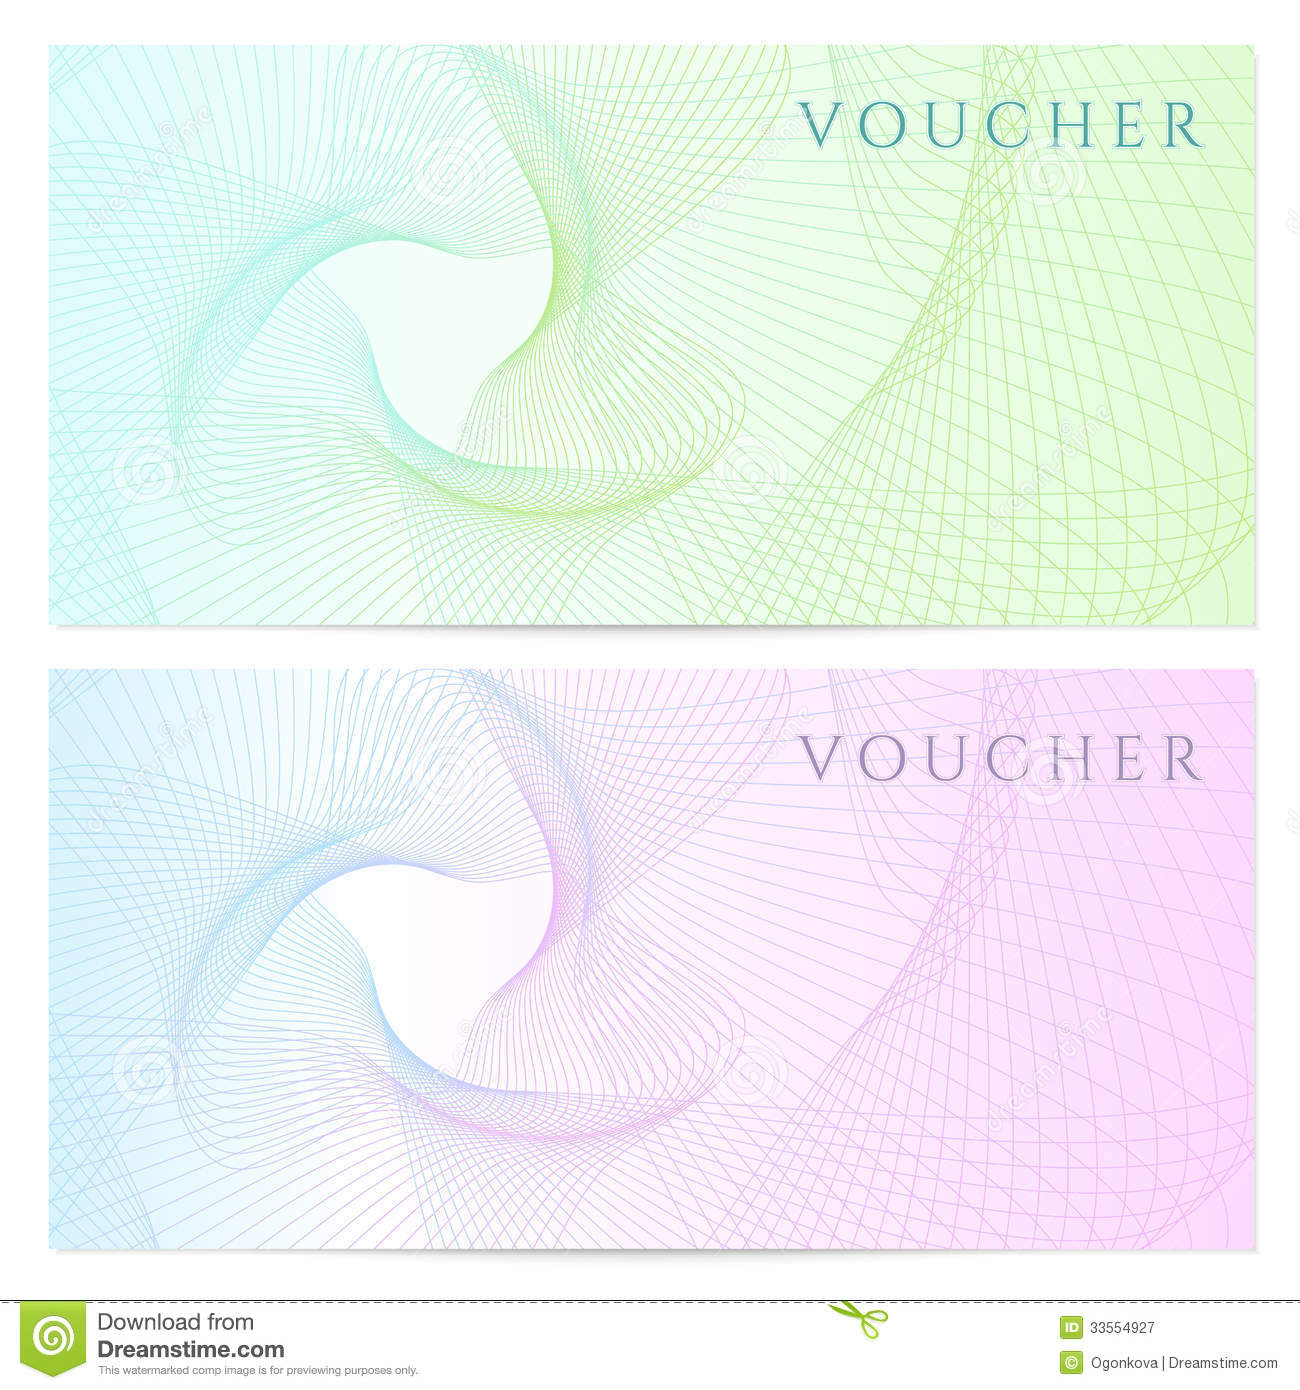 Gift certificate voucher coupon template color stock vector gift certificate voucher coupon template color royalty free stock photo 1betcityfo Images